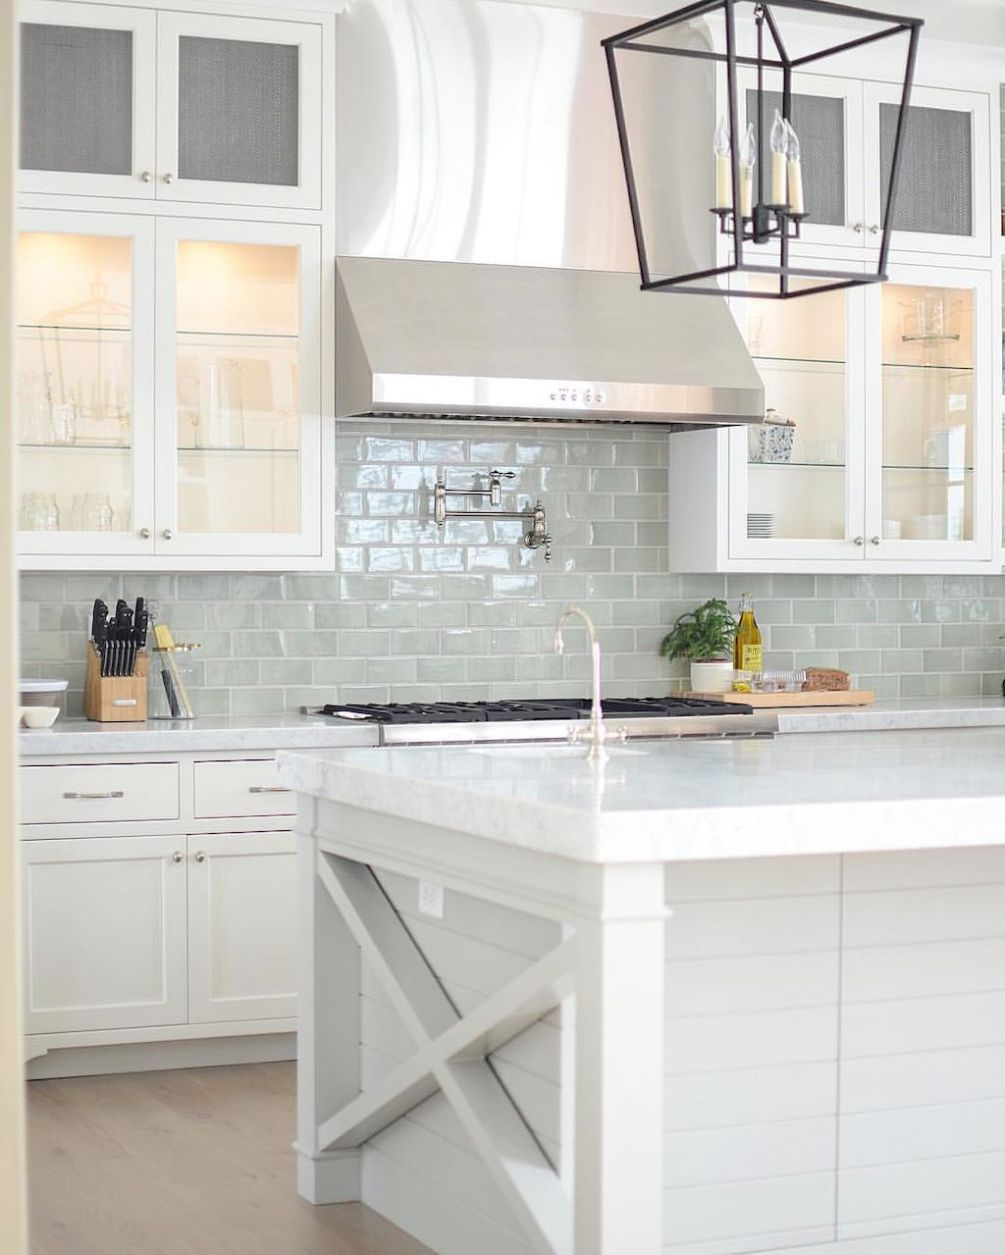 Make The Kitchen Backsplash More Beautiful: 30 Beautiful Kitchen Backsplash Decor Ideas